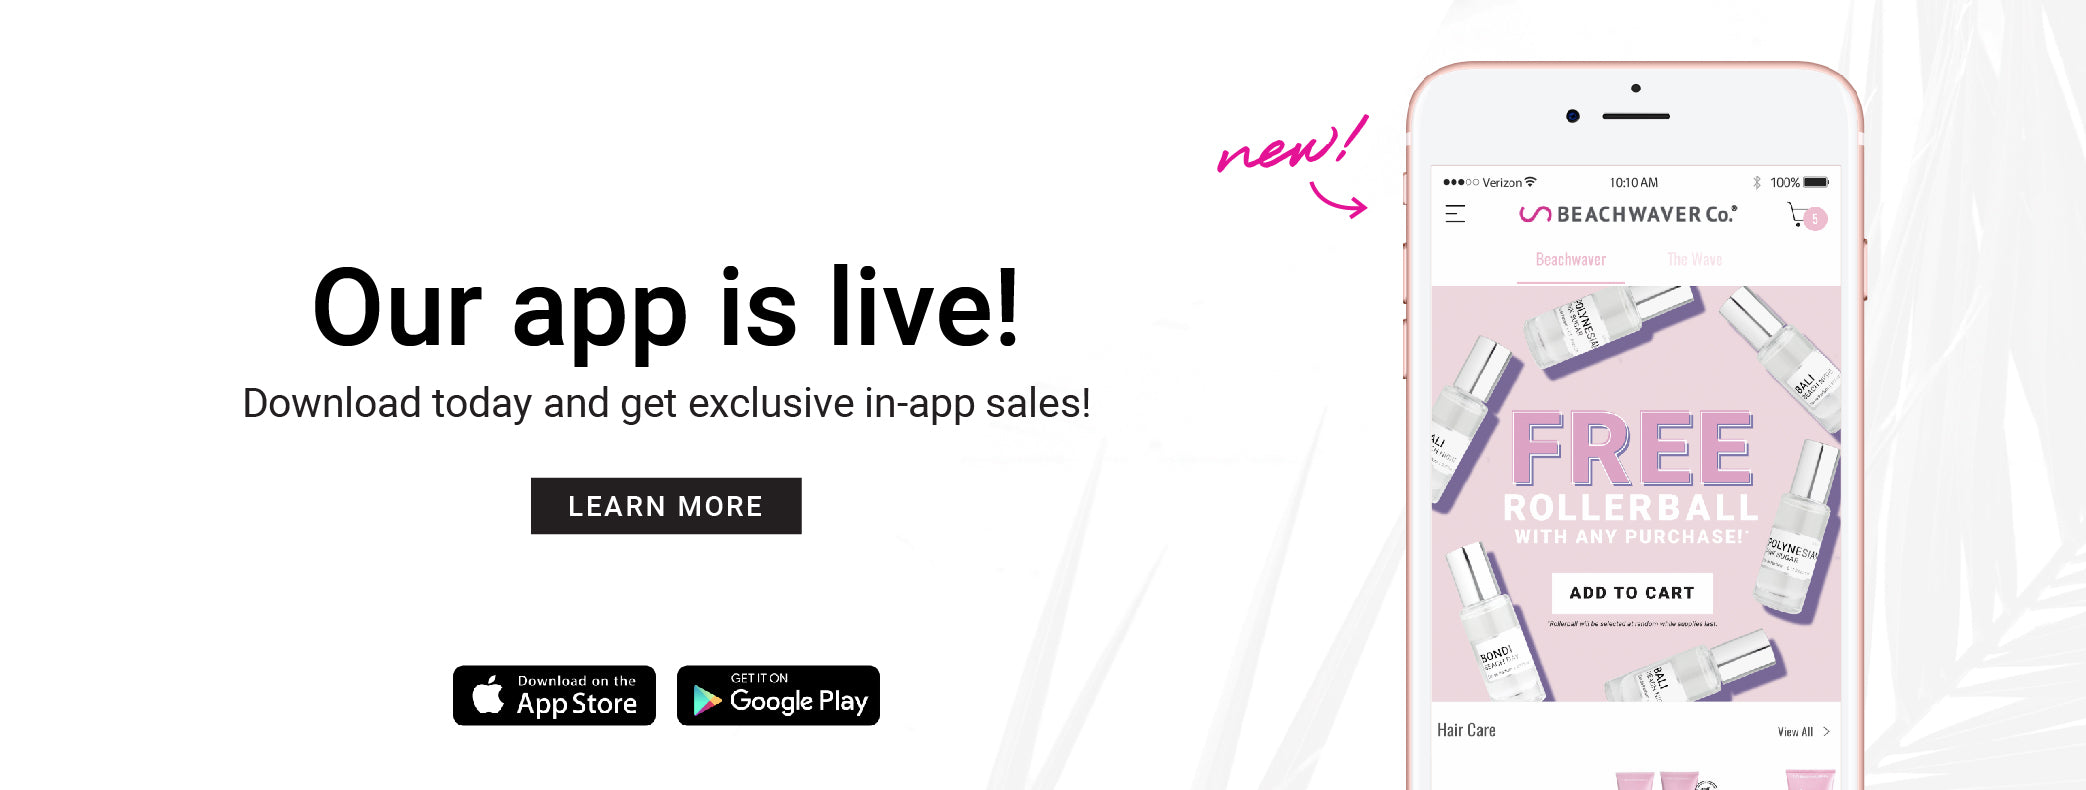 Download our app for exclusive sales!